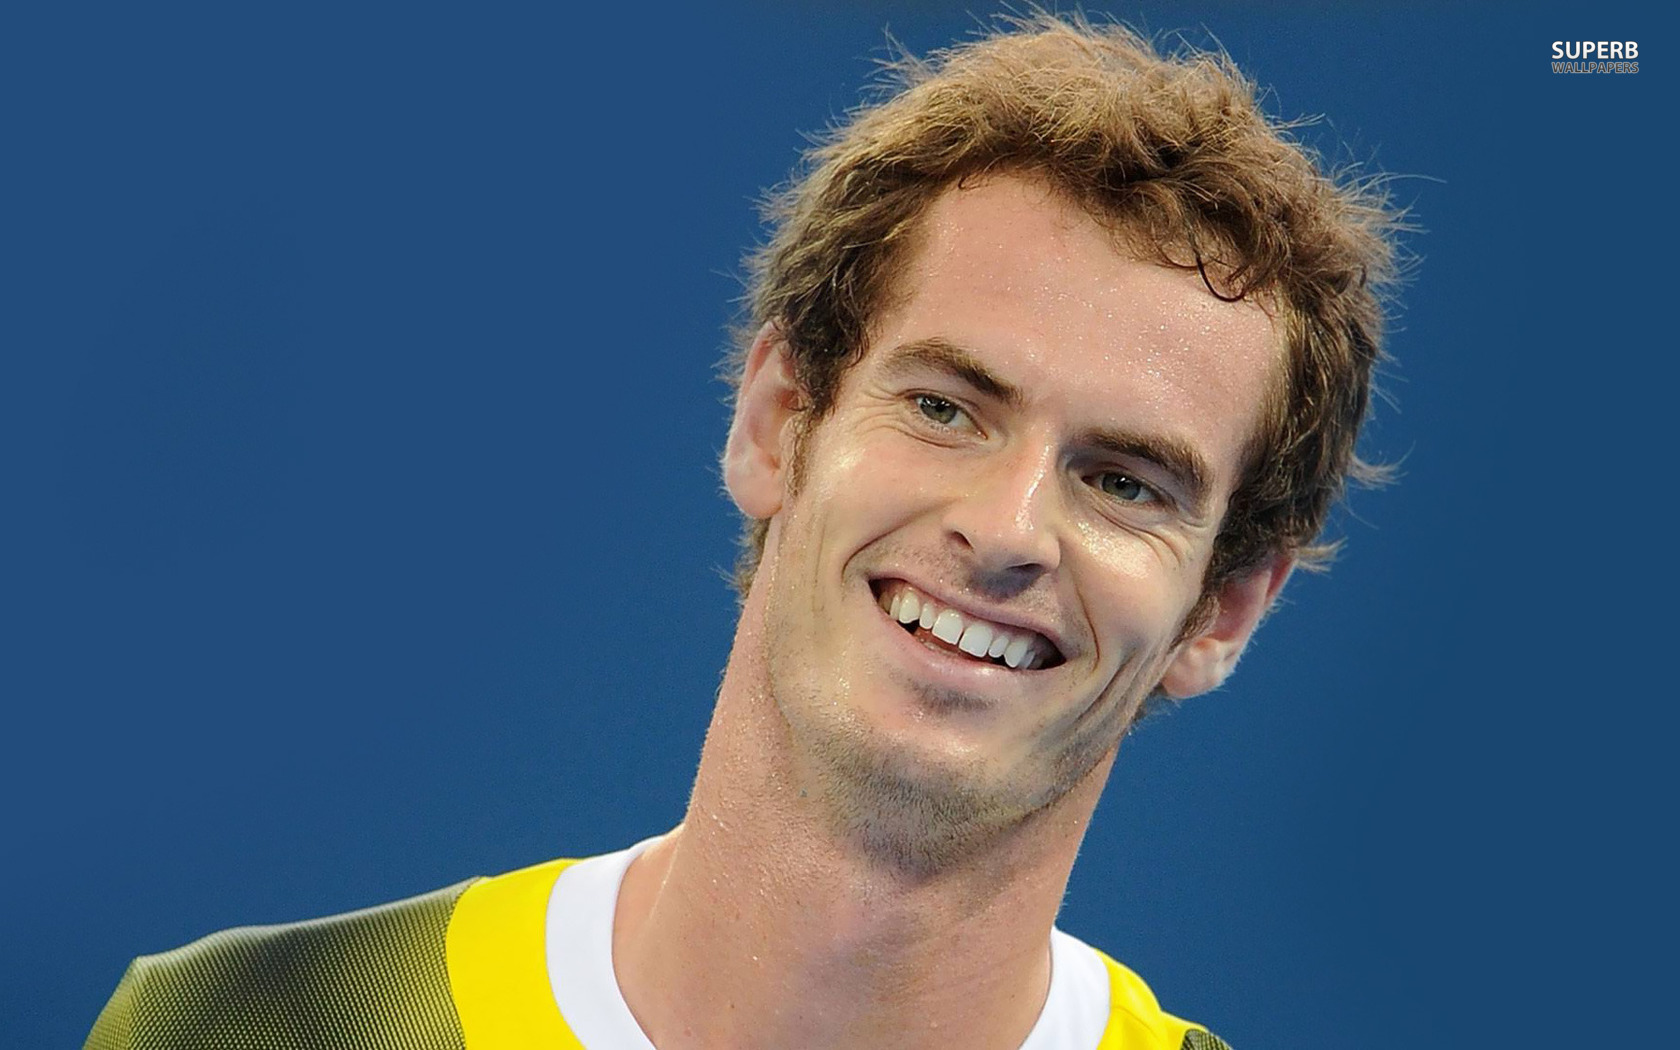 Andy Murray wallpaper 1680x1050